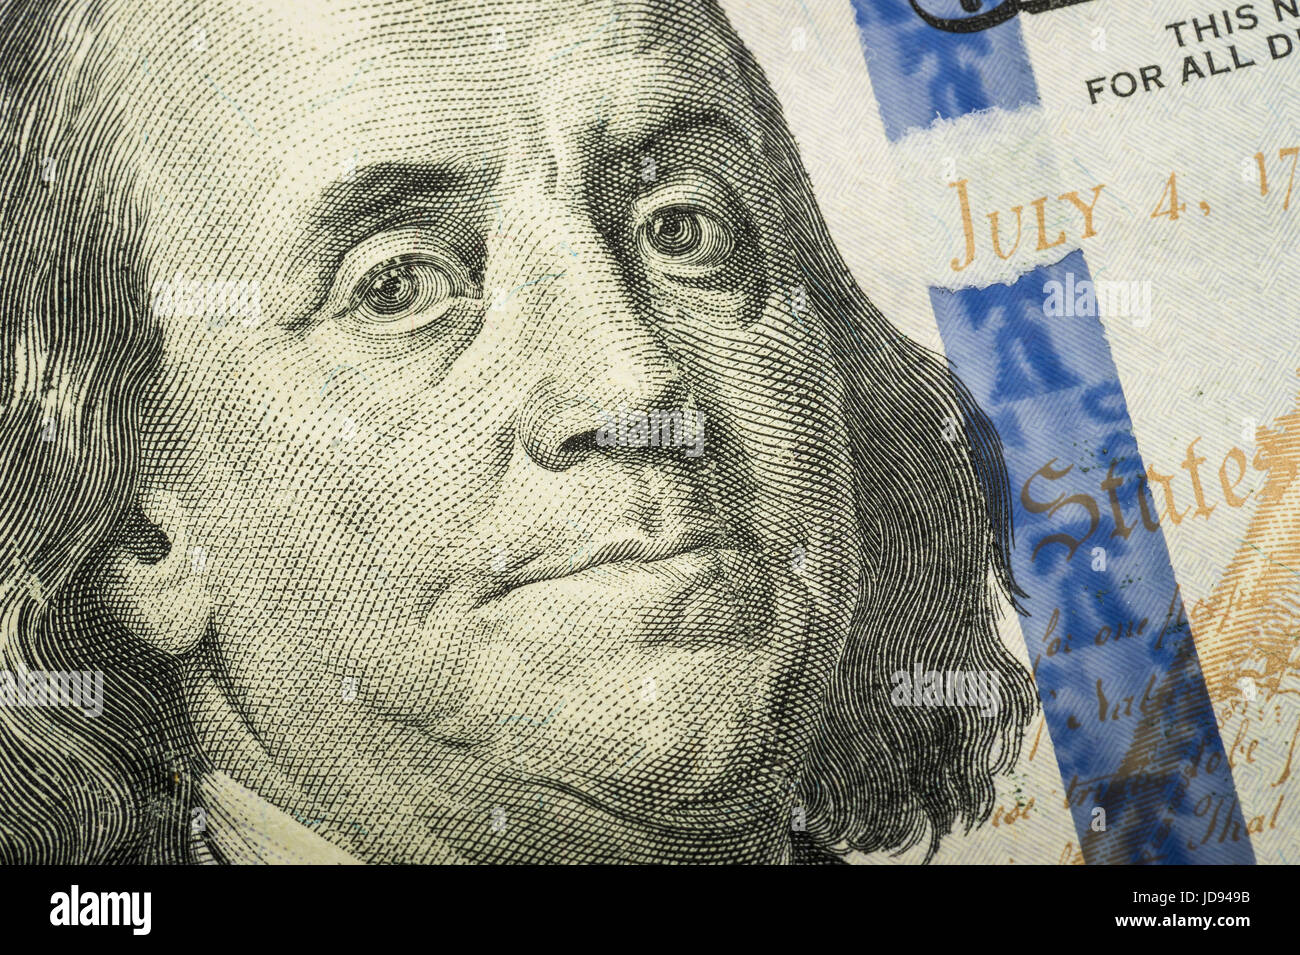 Ben Franklin Detail On US One Hundred Dollar Bill - Stock Image